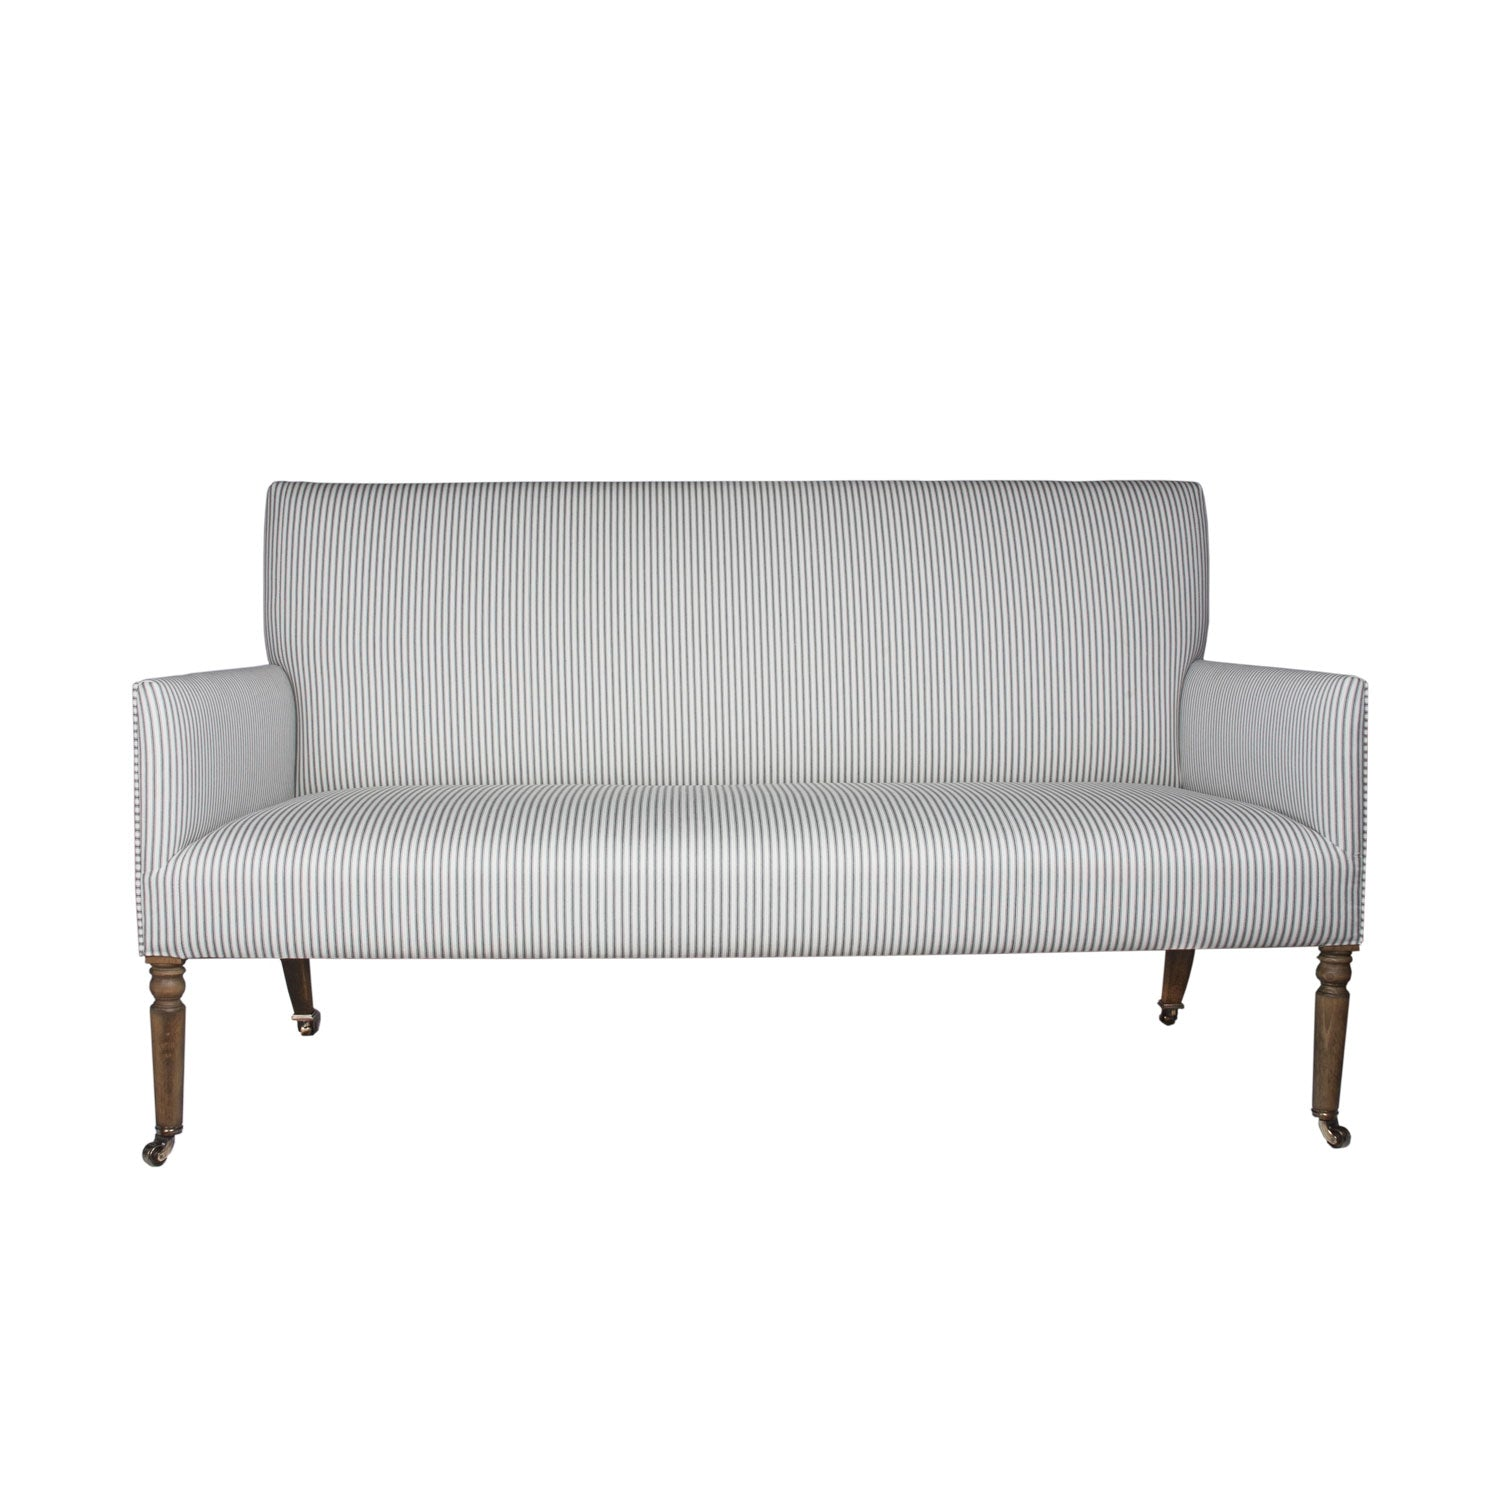 P&H Bloomsbury Sofa - 2.5 seater - Made to Order